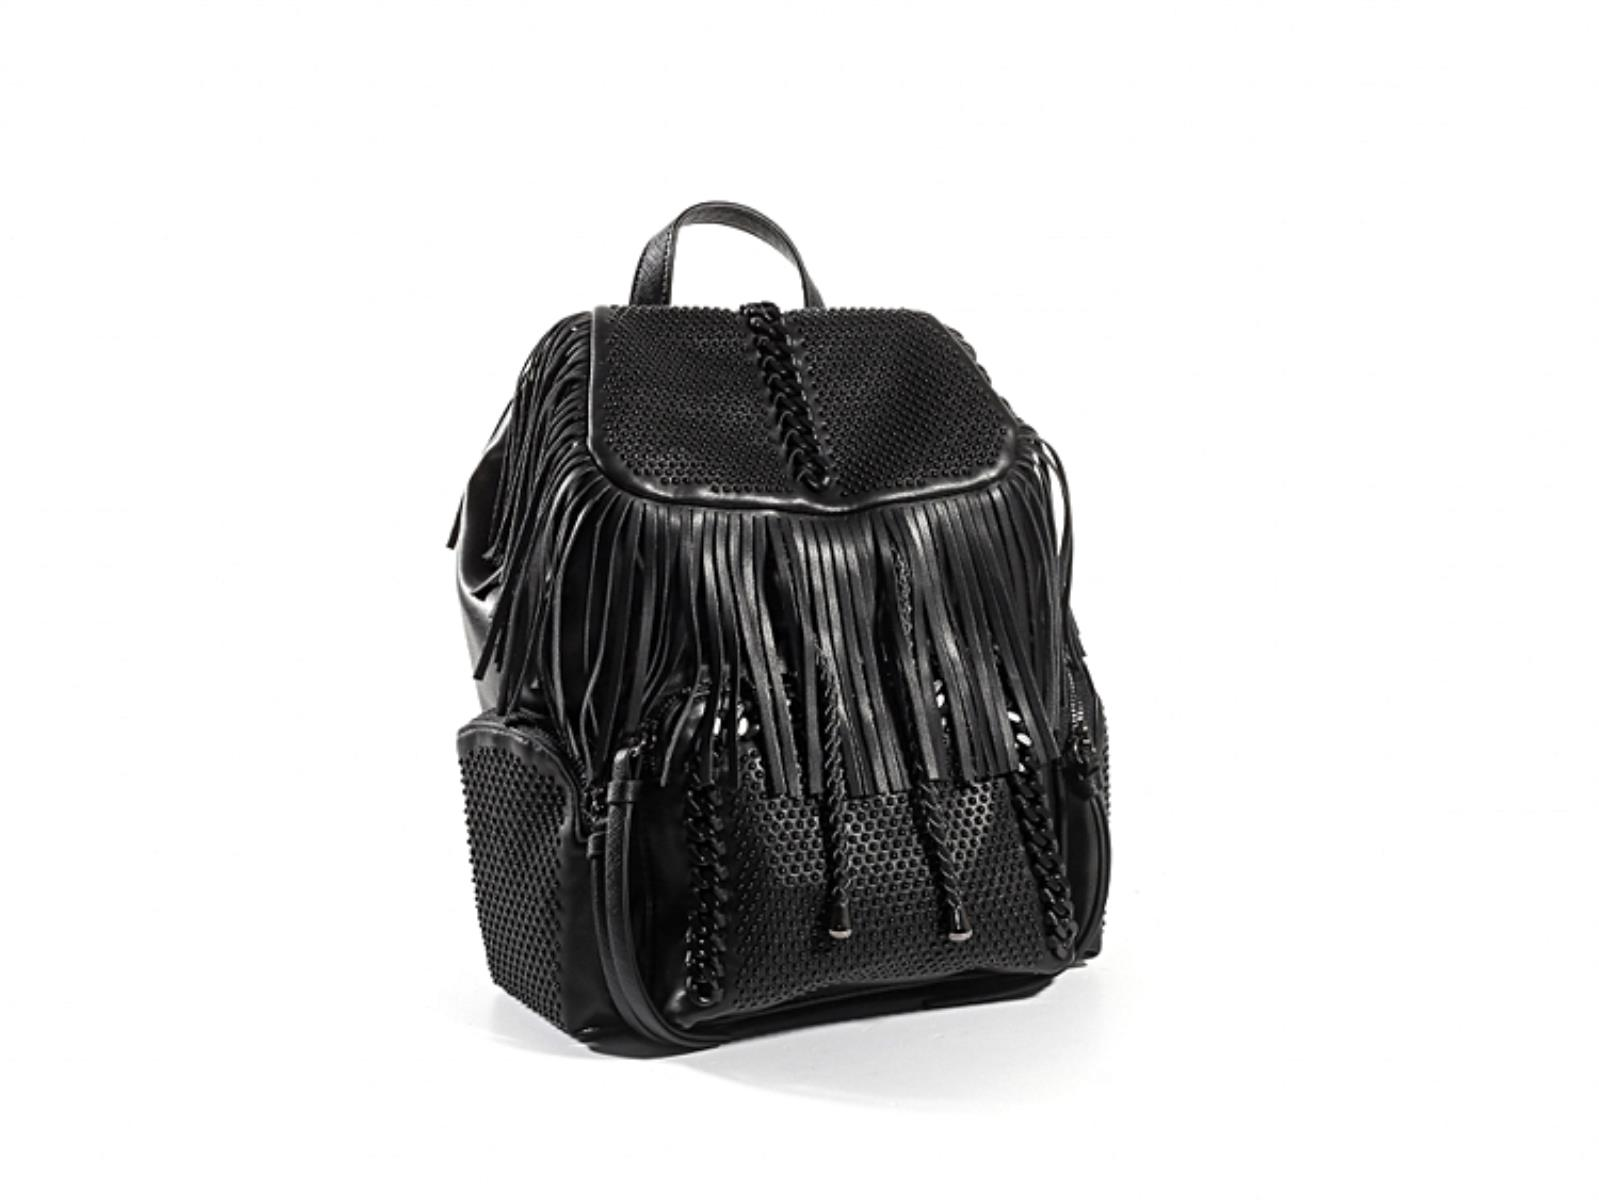 8524aff0bd La Carrie Bag Zaino 191-z-220-ep/bl-bl | Am Boutique